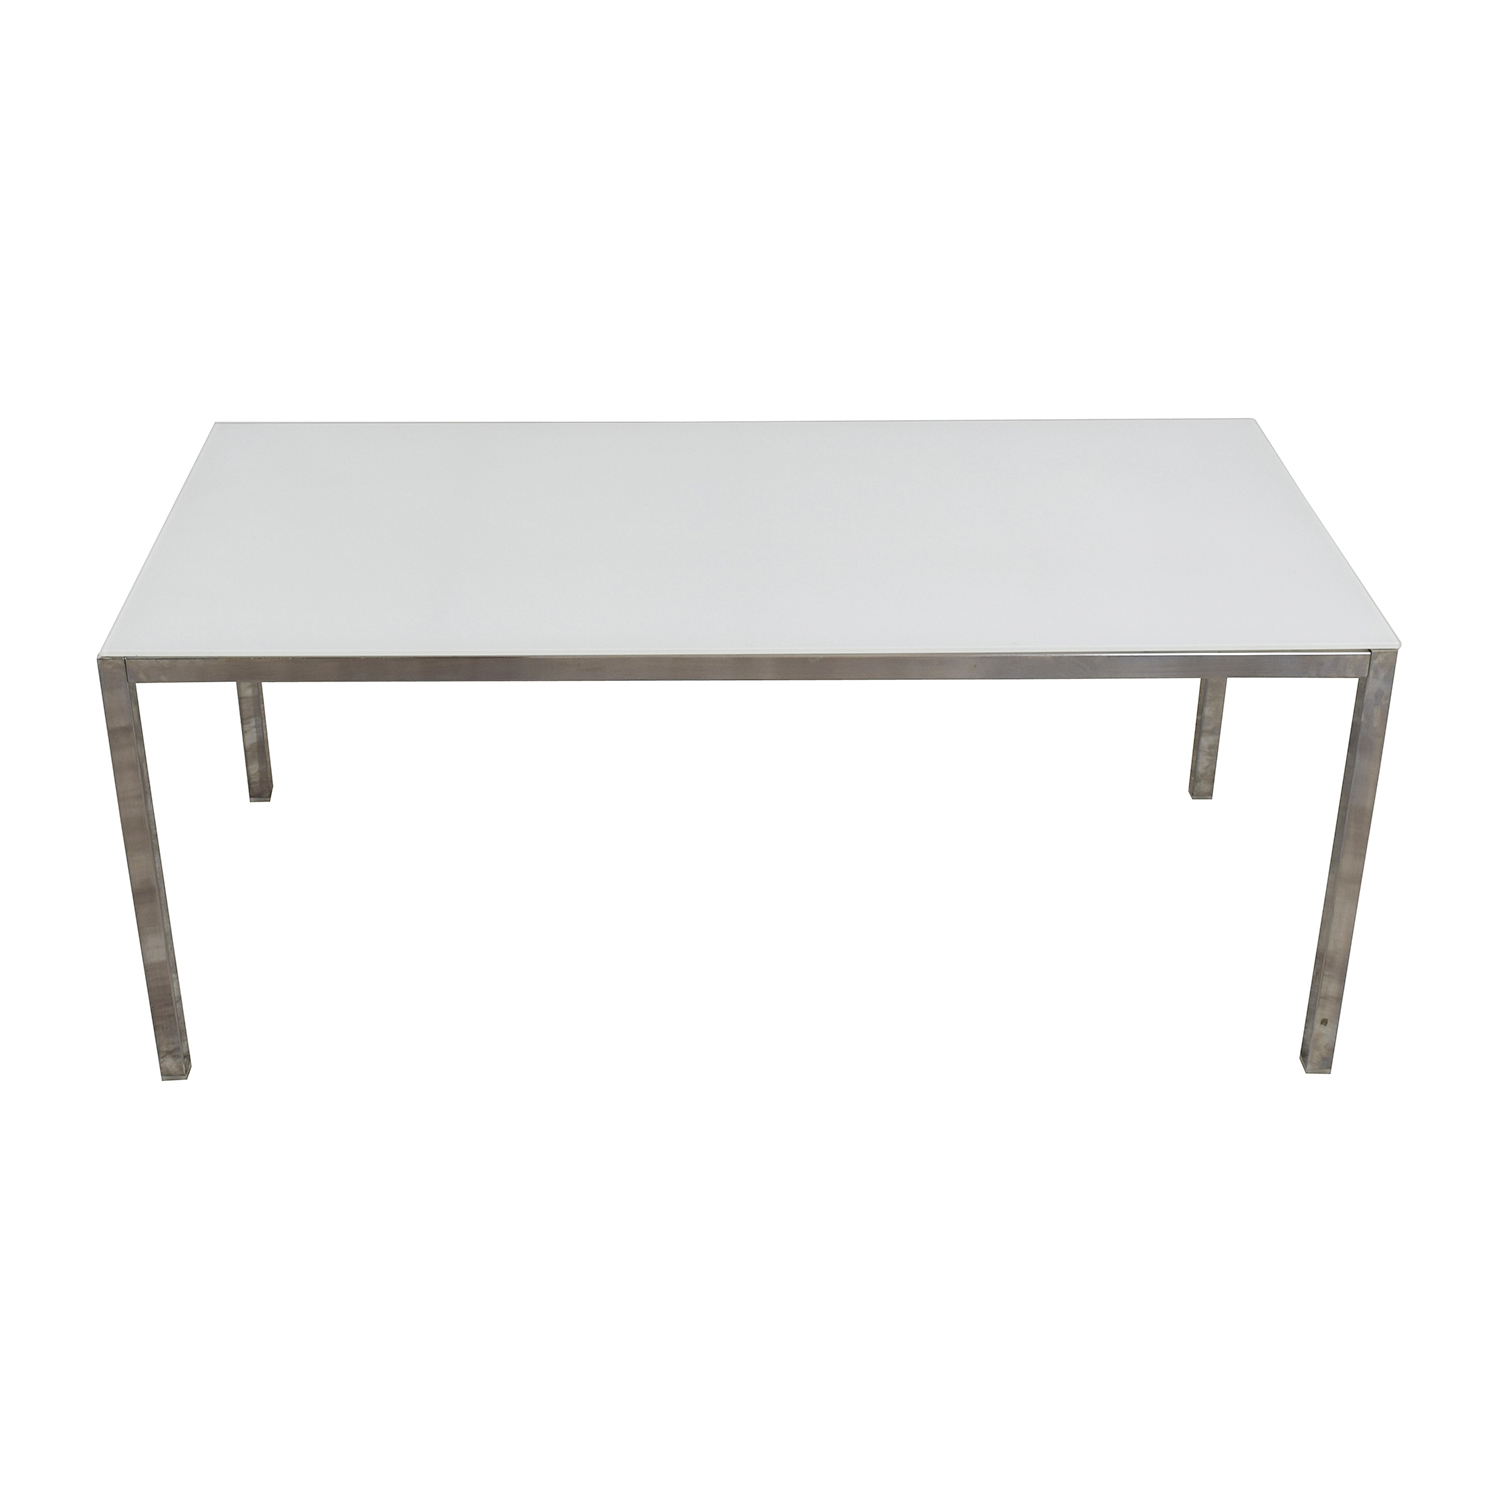 IKEA Norsby Dining Table or Desk sale